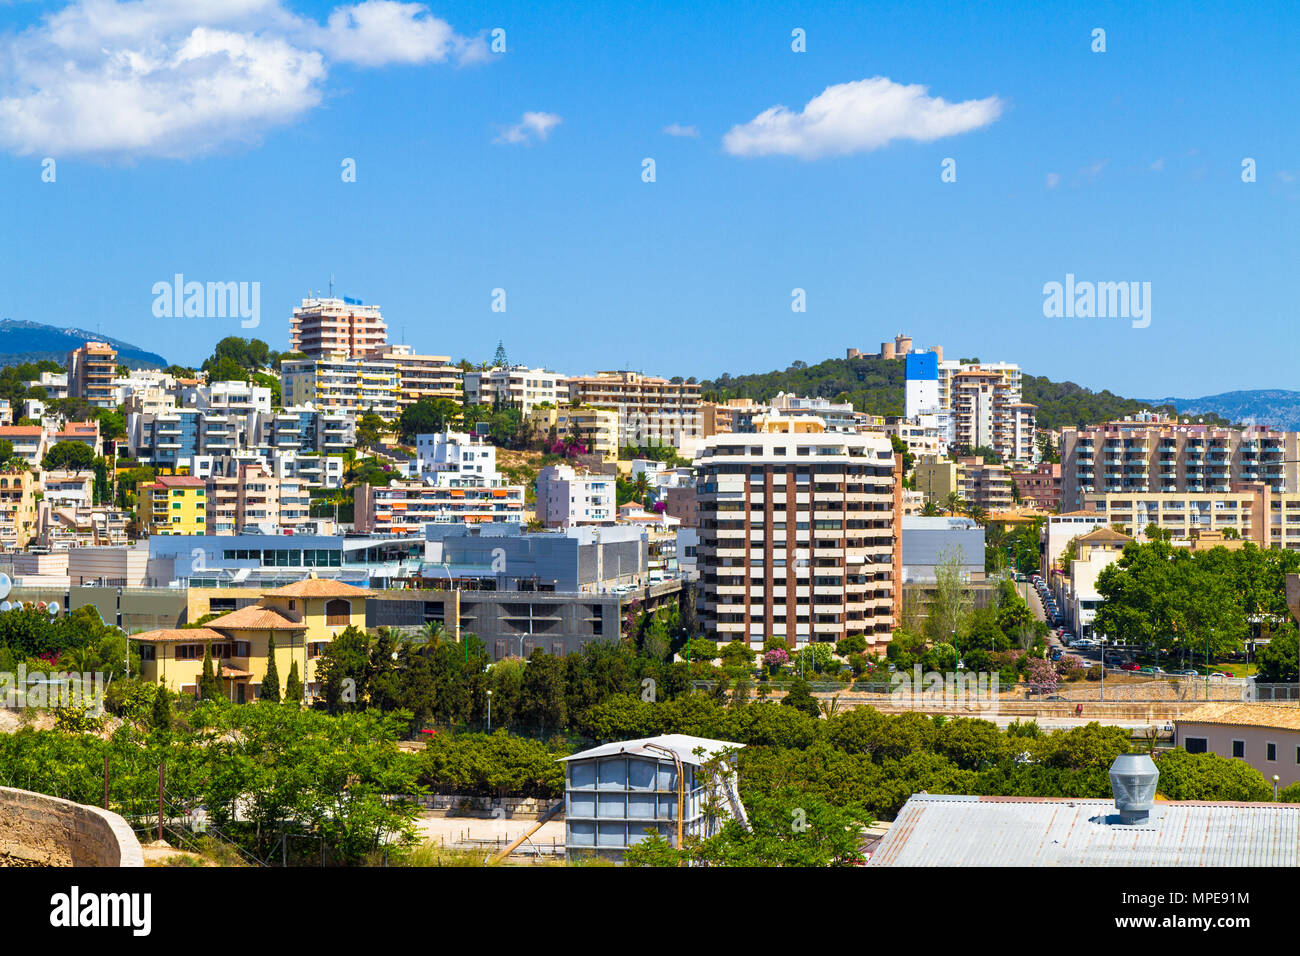 Panoramic view suburban Palma Mallorca with Belvere castle in the background. - Stock Image